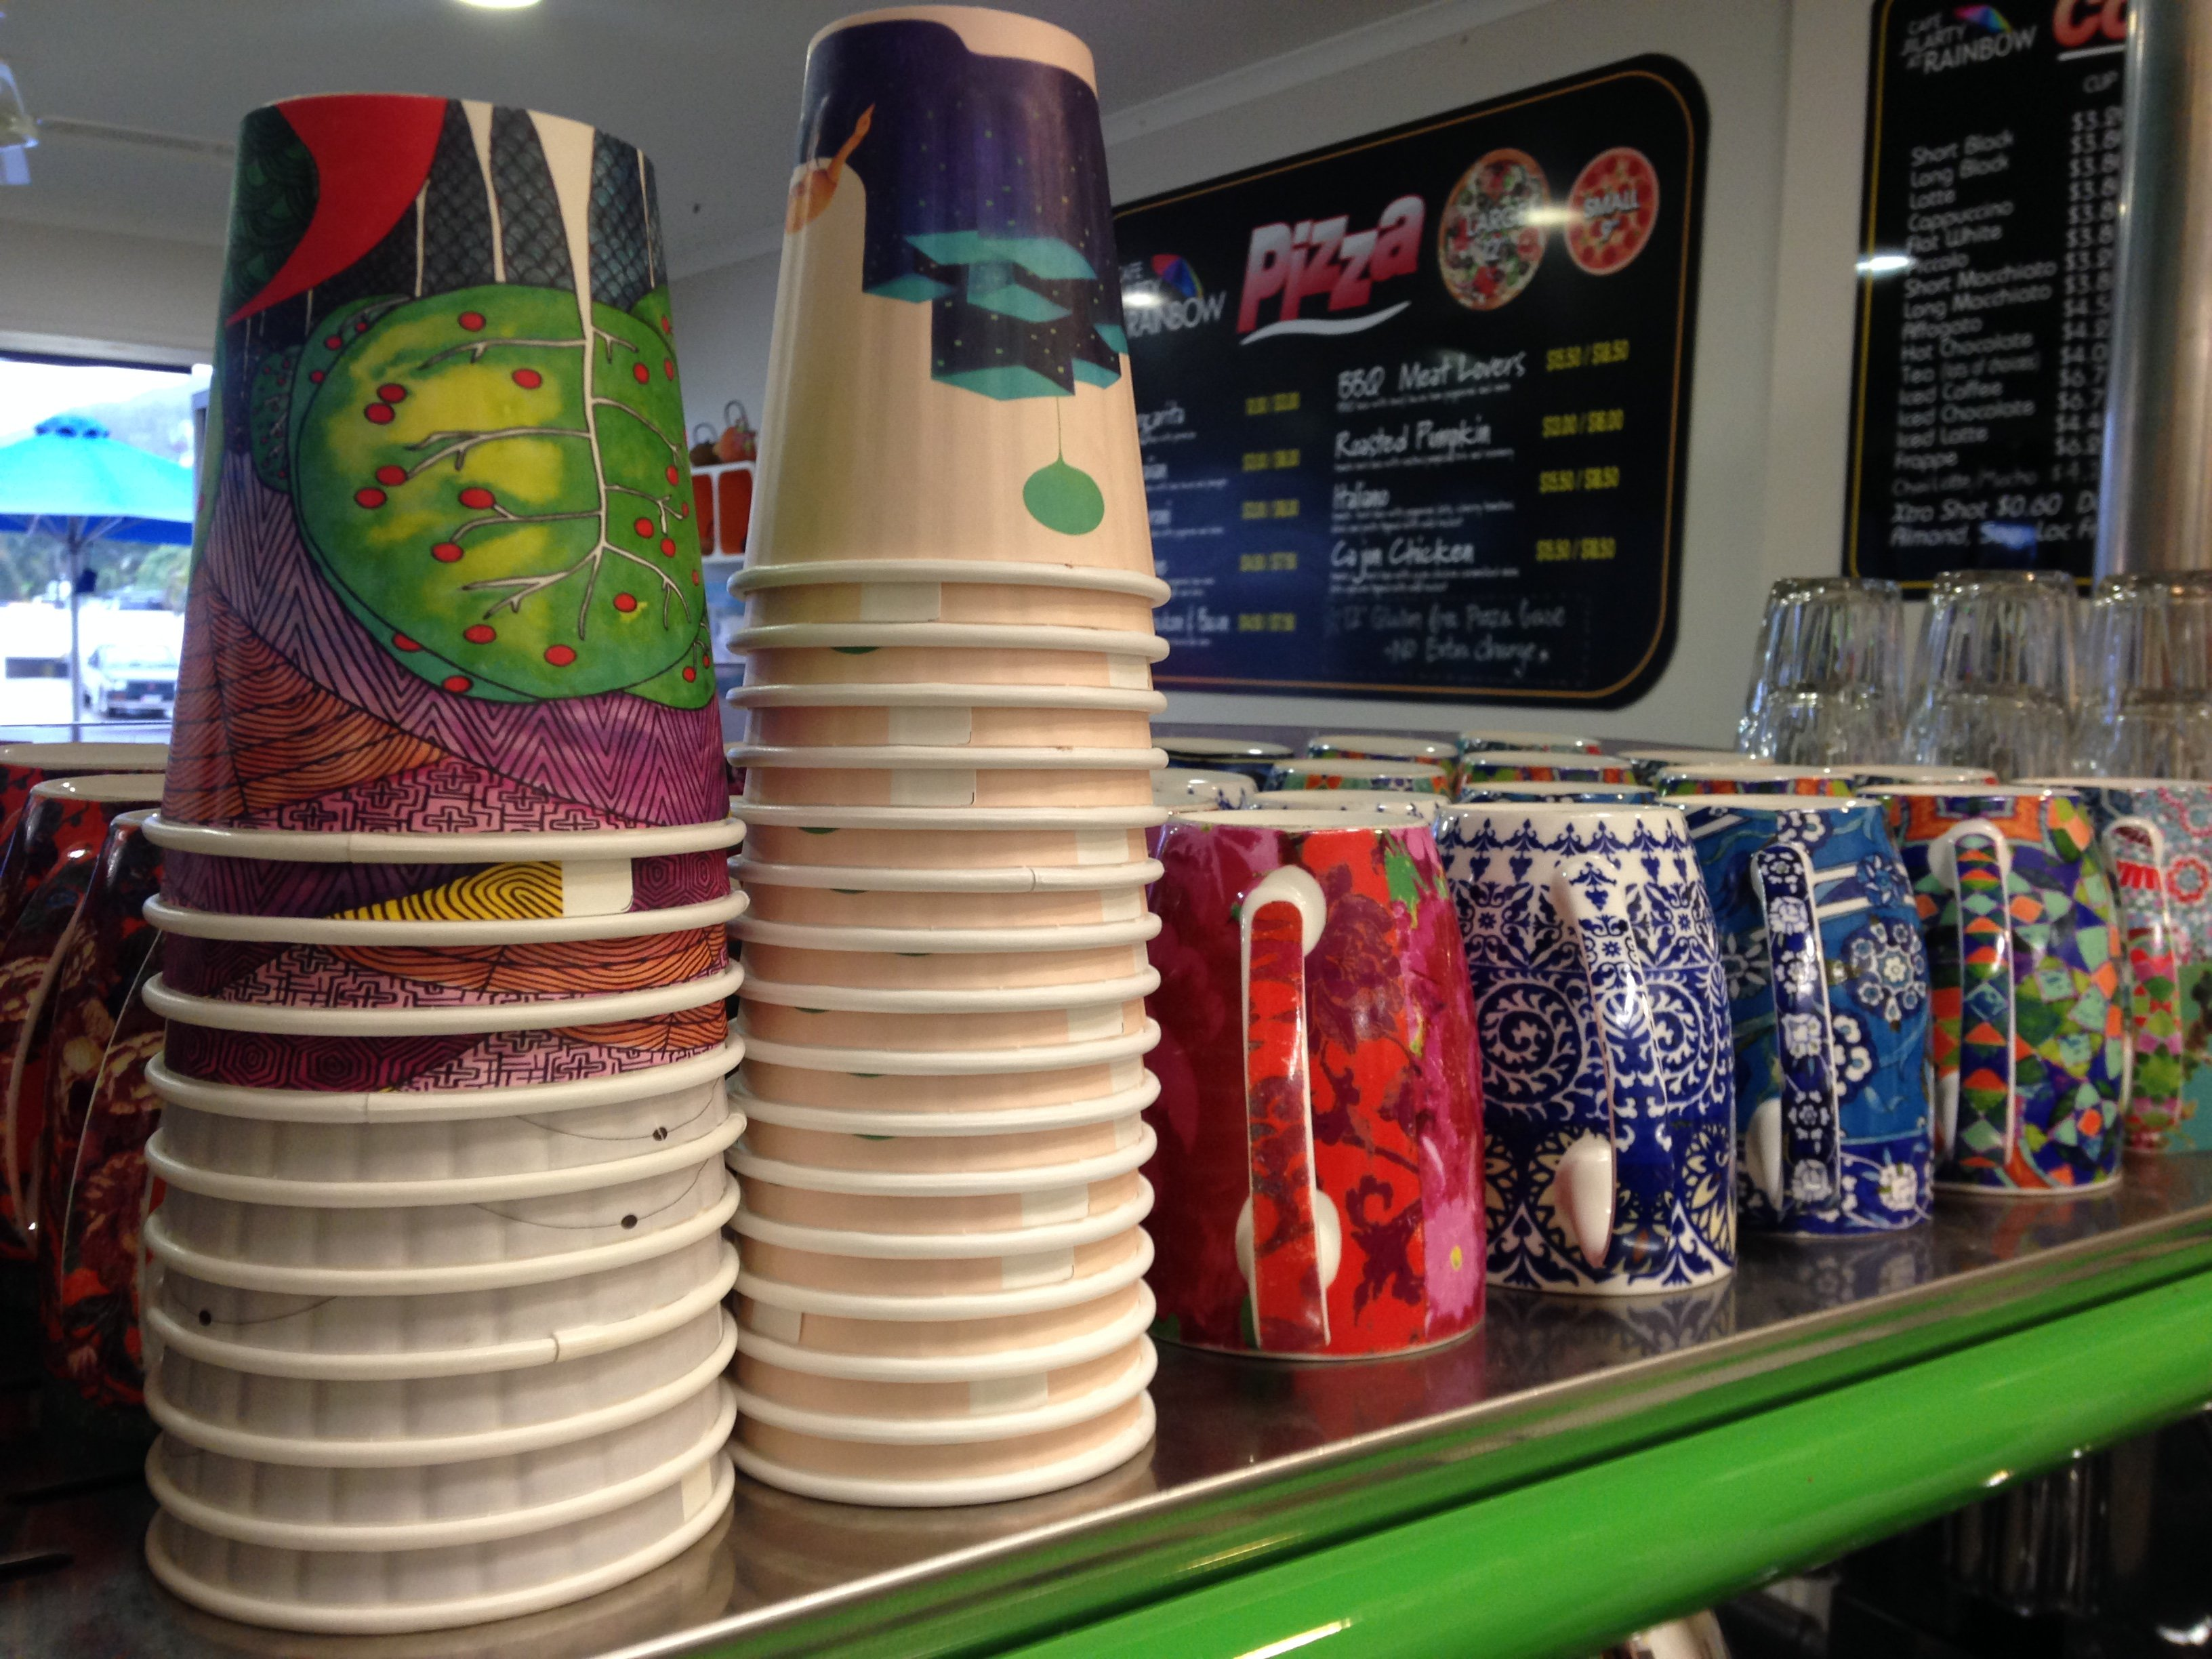 View of cups used at the cafe